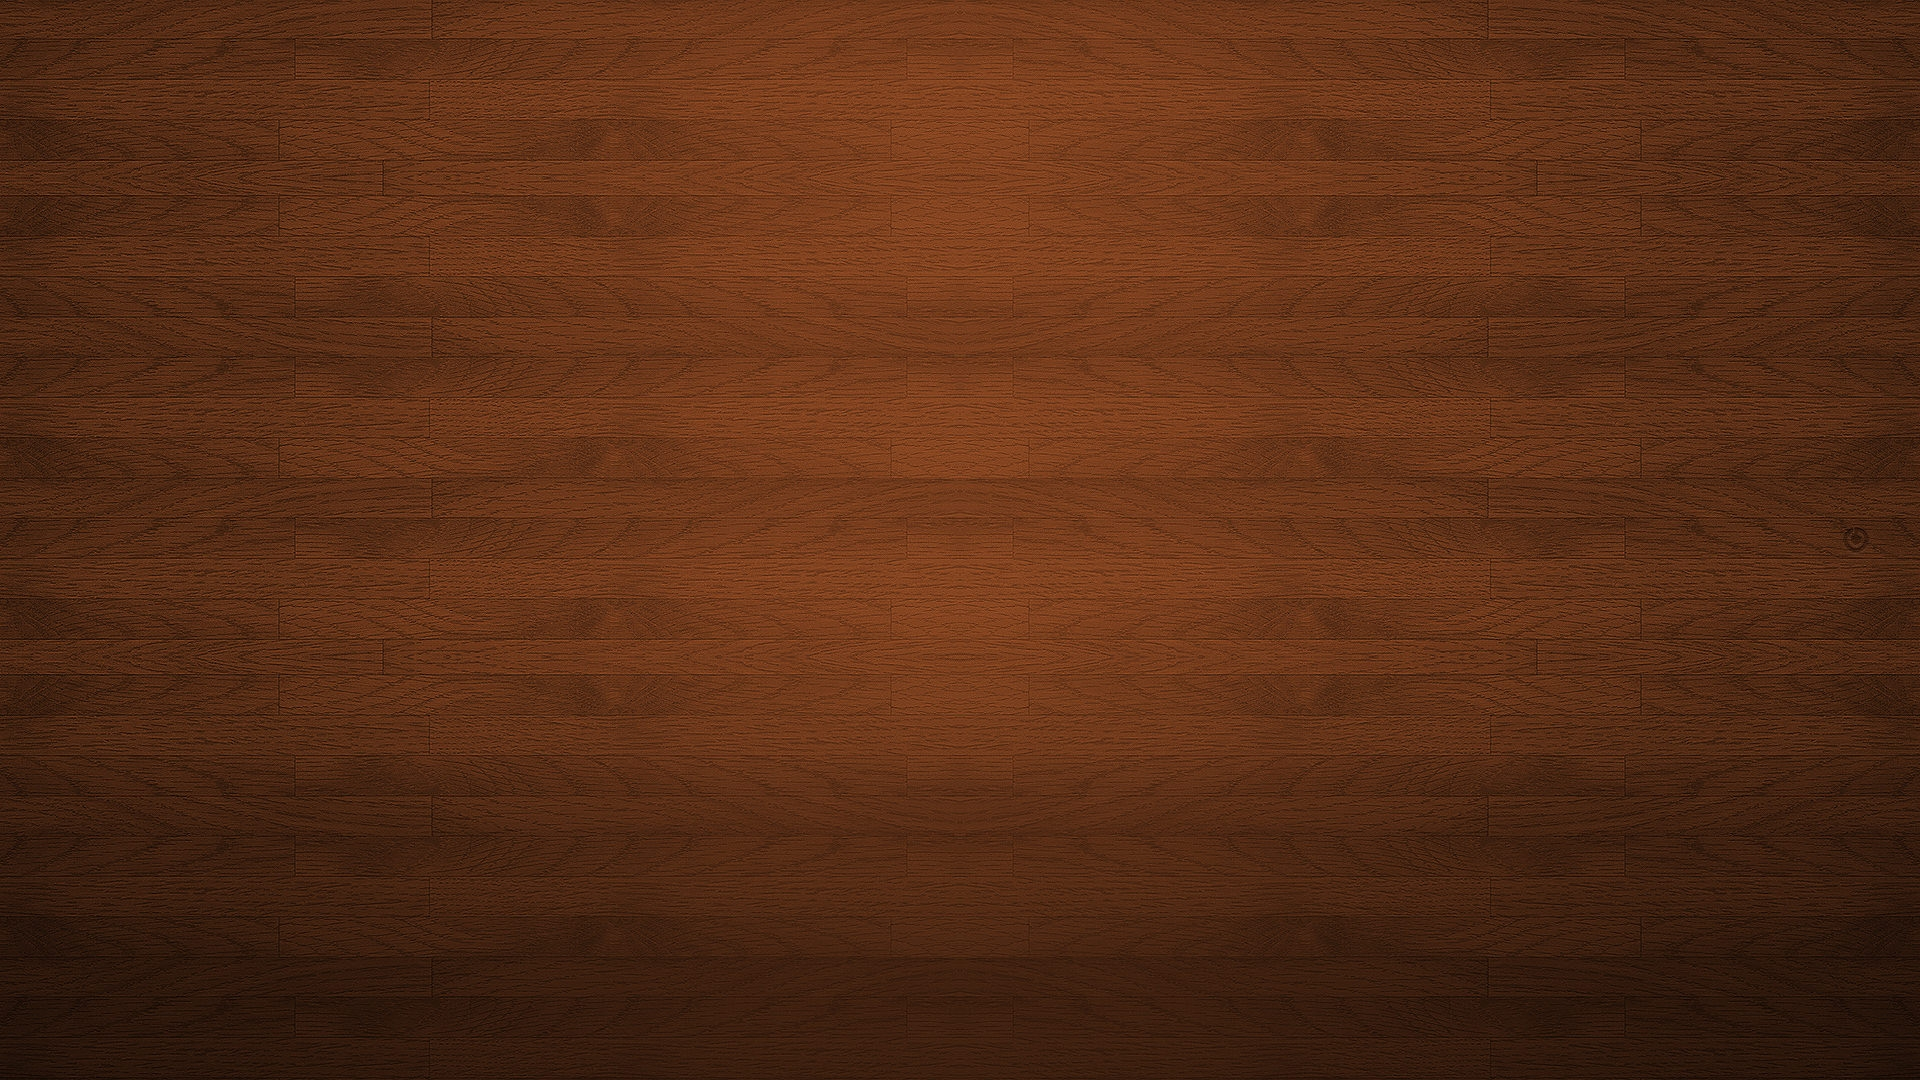 HD Wood Background for PPT Presentation